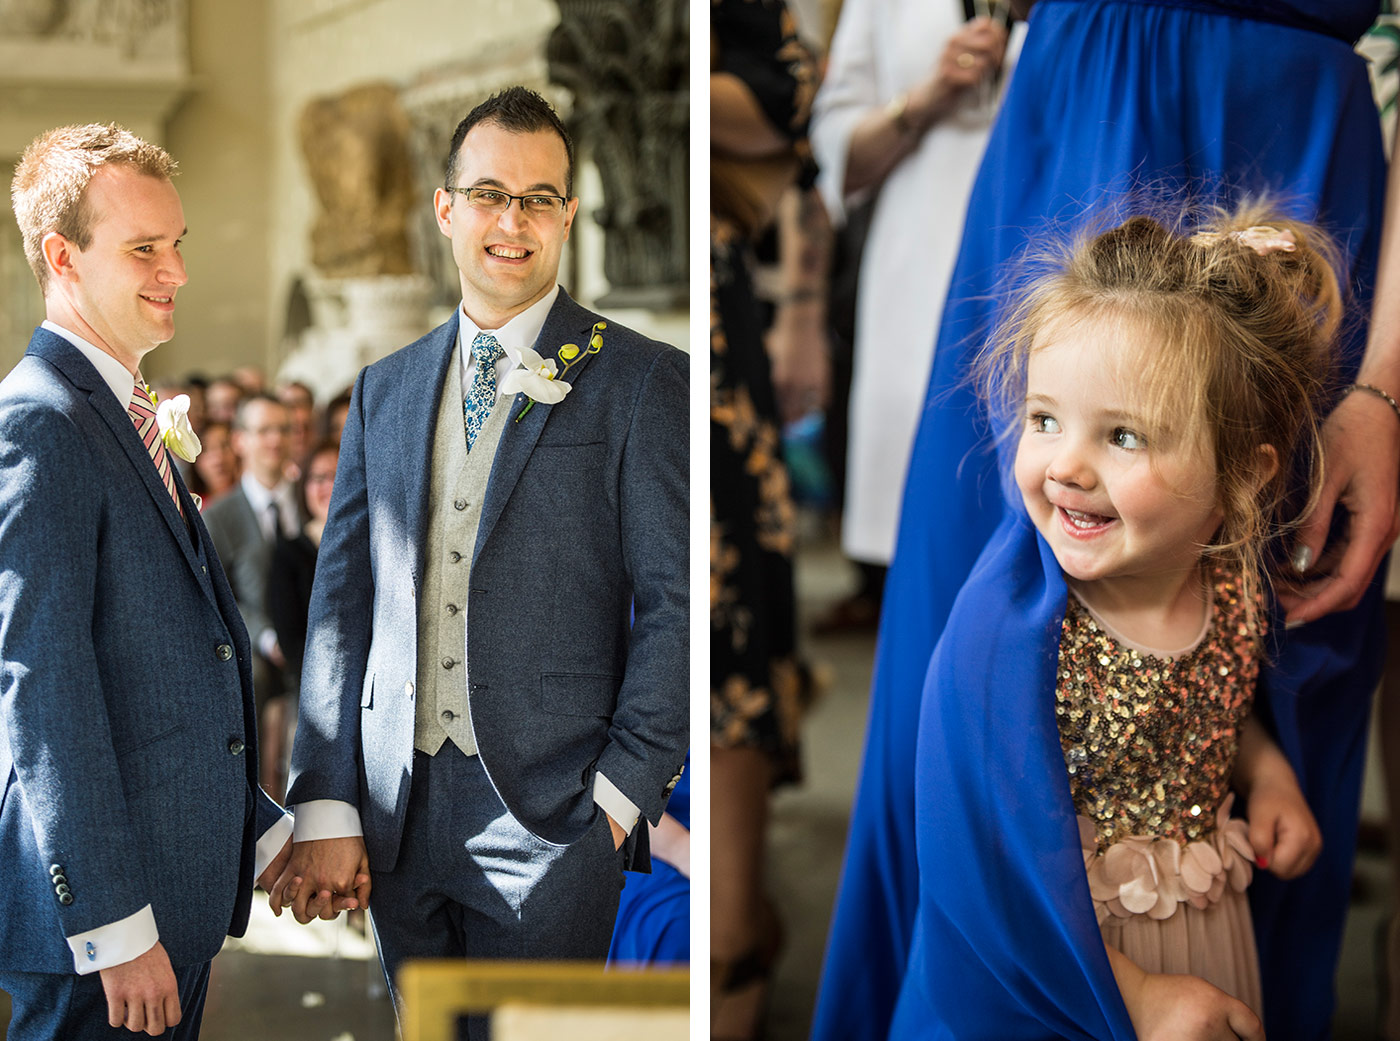 Aynhoe Park Wedding Photography - Harry Richards Photography